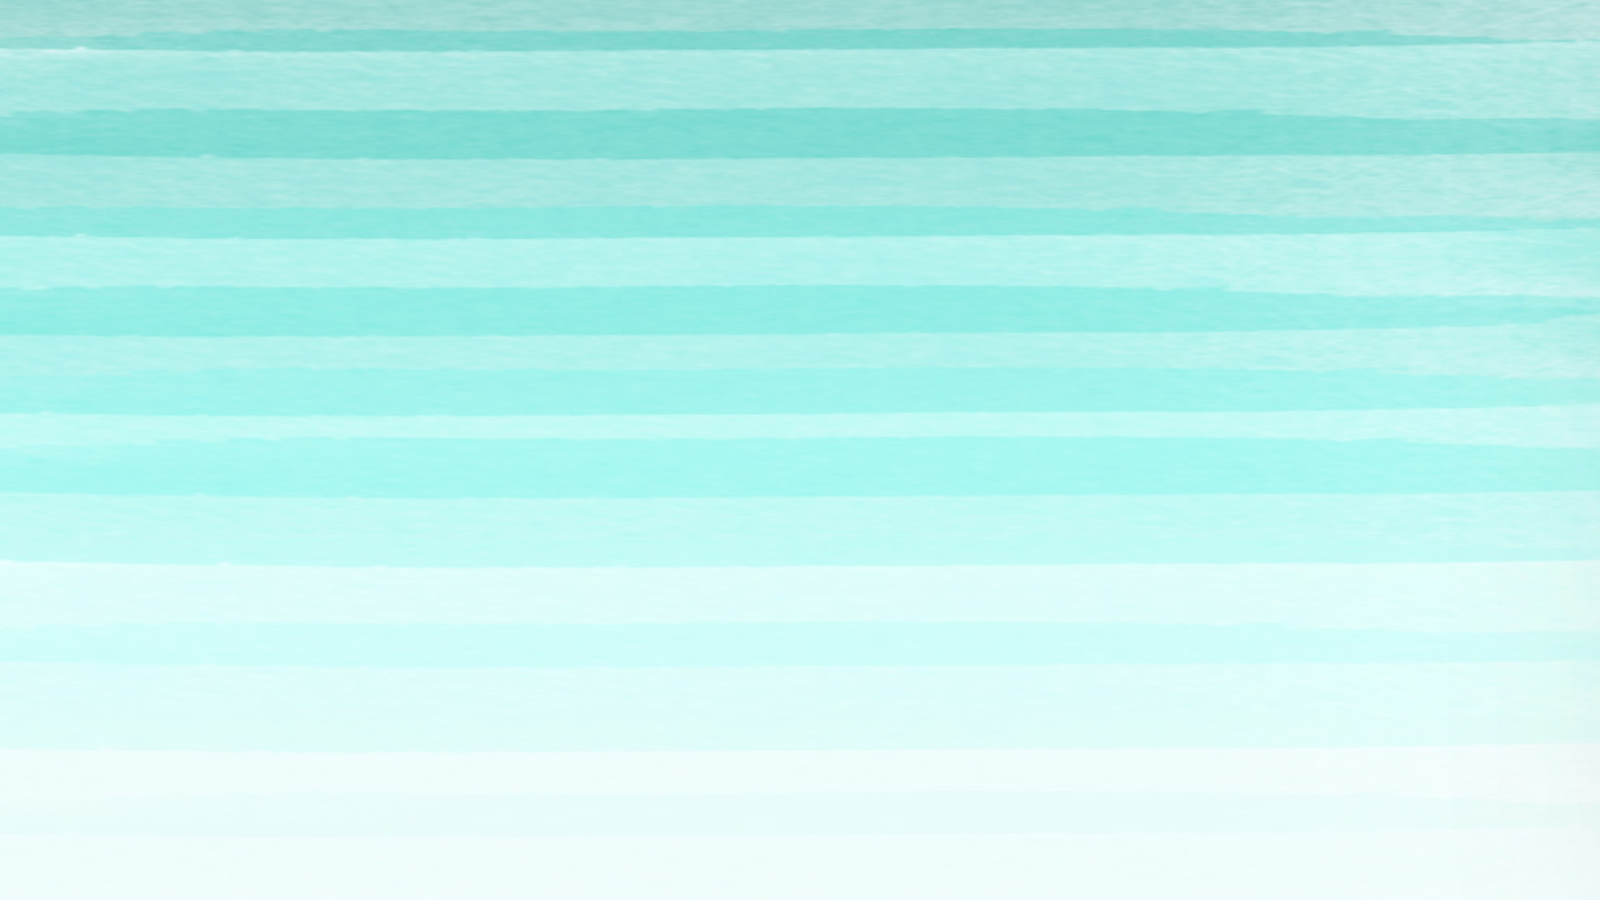 Mint Background Tumblr Posted By Ryan Thompson